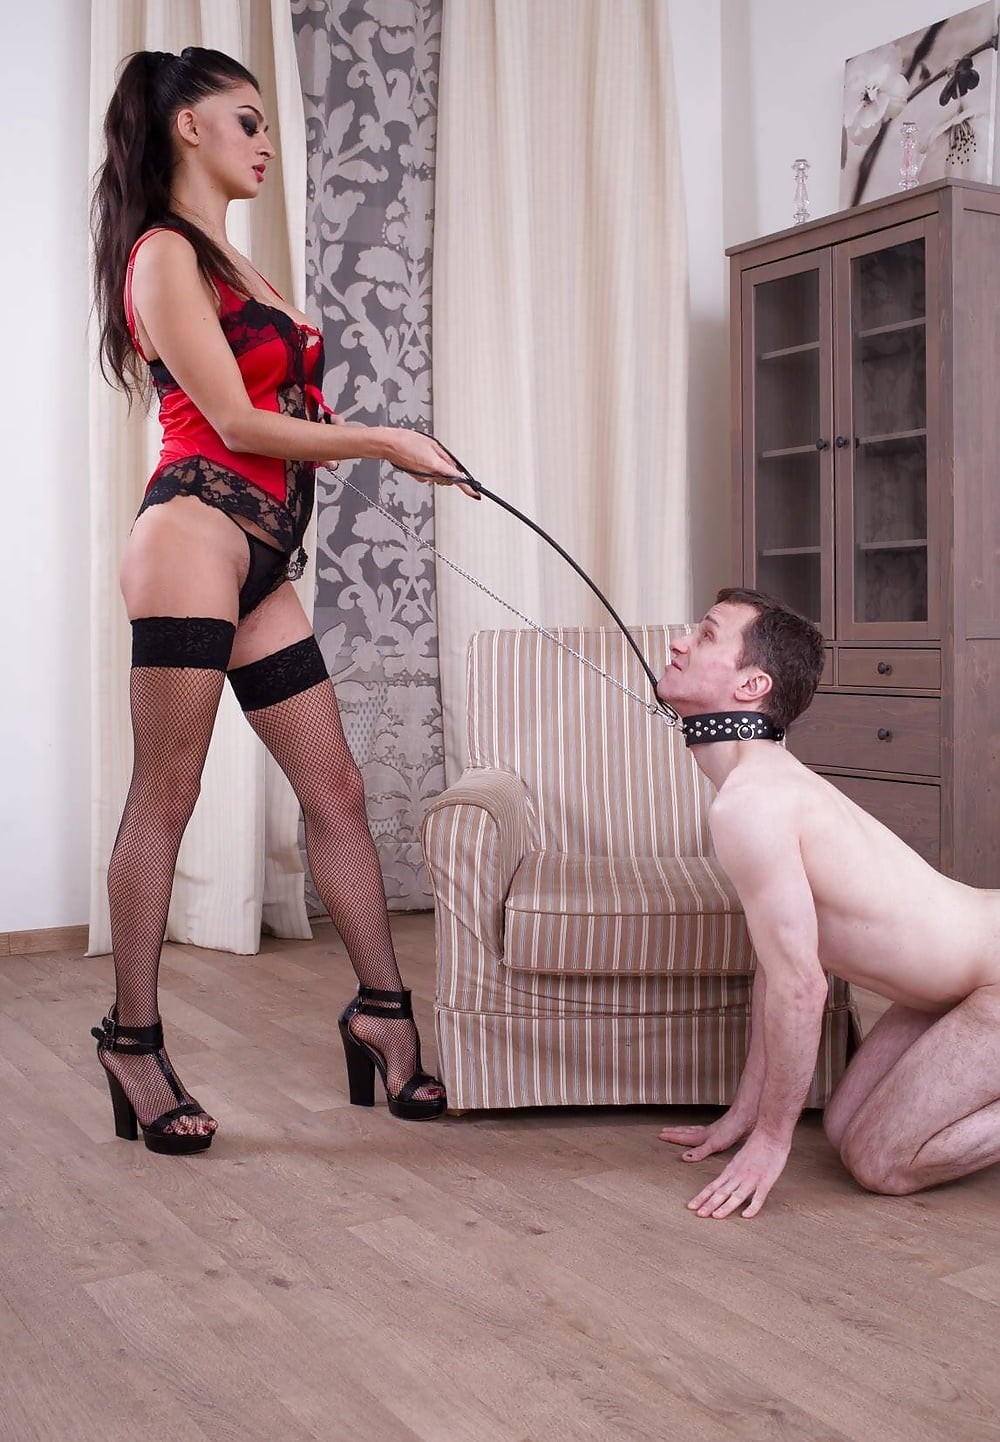 dominatrix-hairy-pussy-tupe-anal-porn-pic-nude